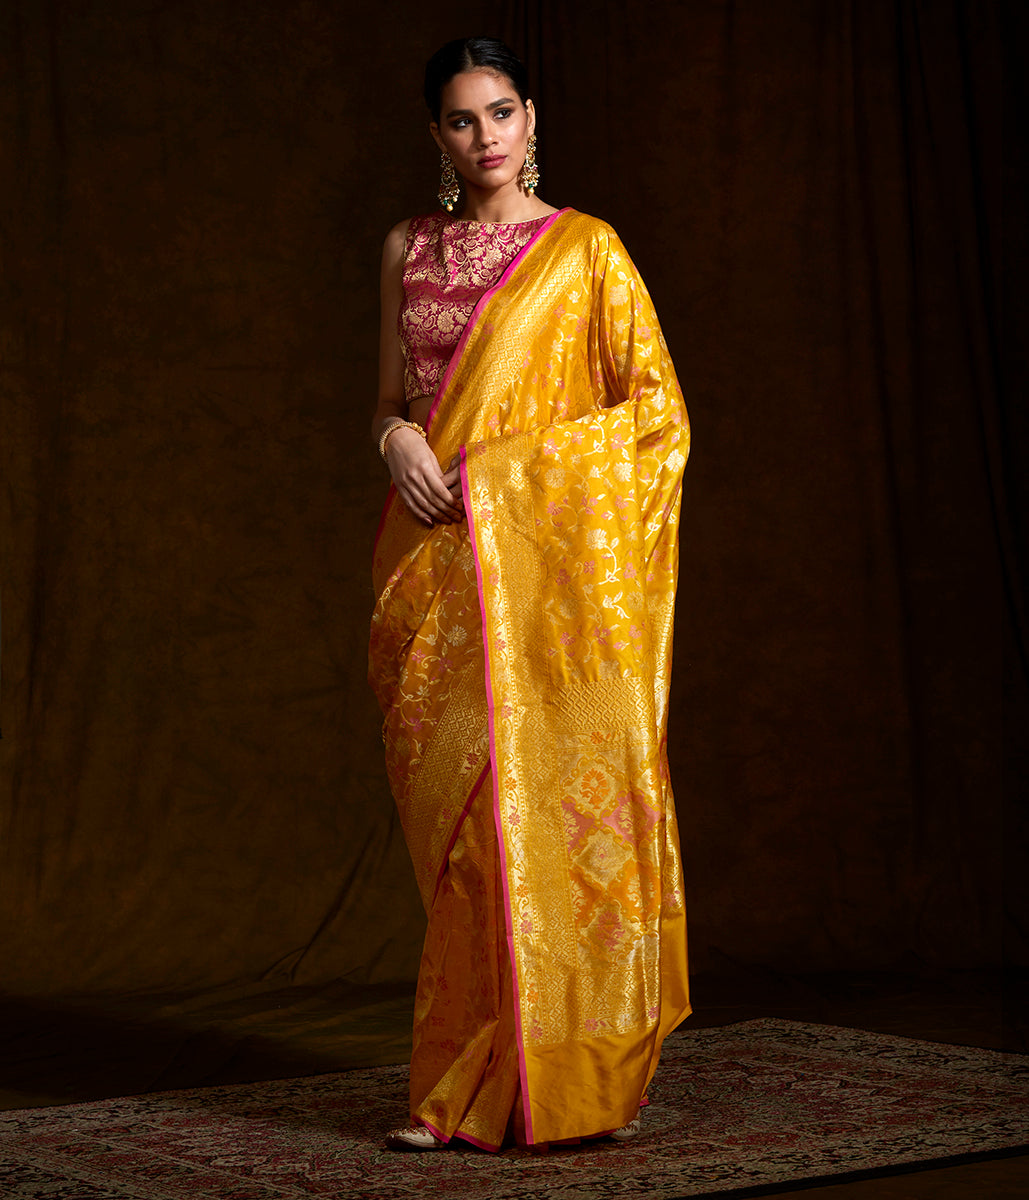 Handwoven Banarasi katan silk saree in mustard yellow with meenakari jaal